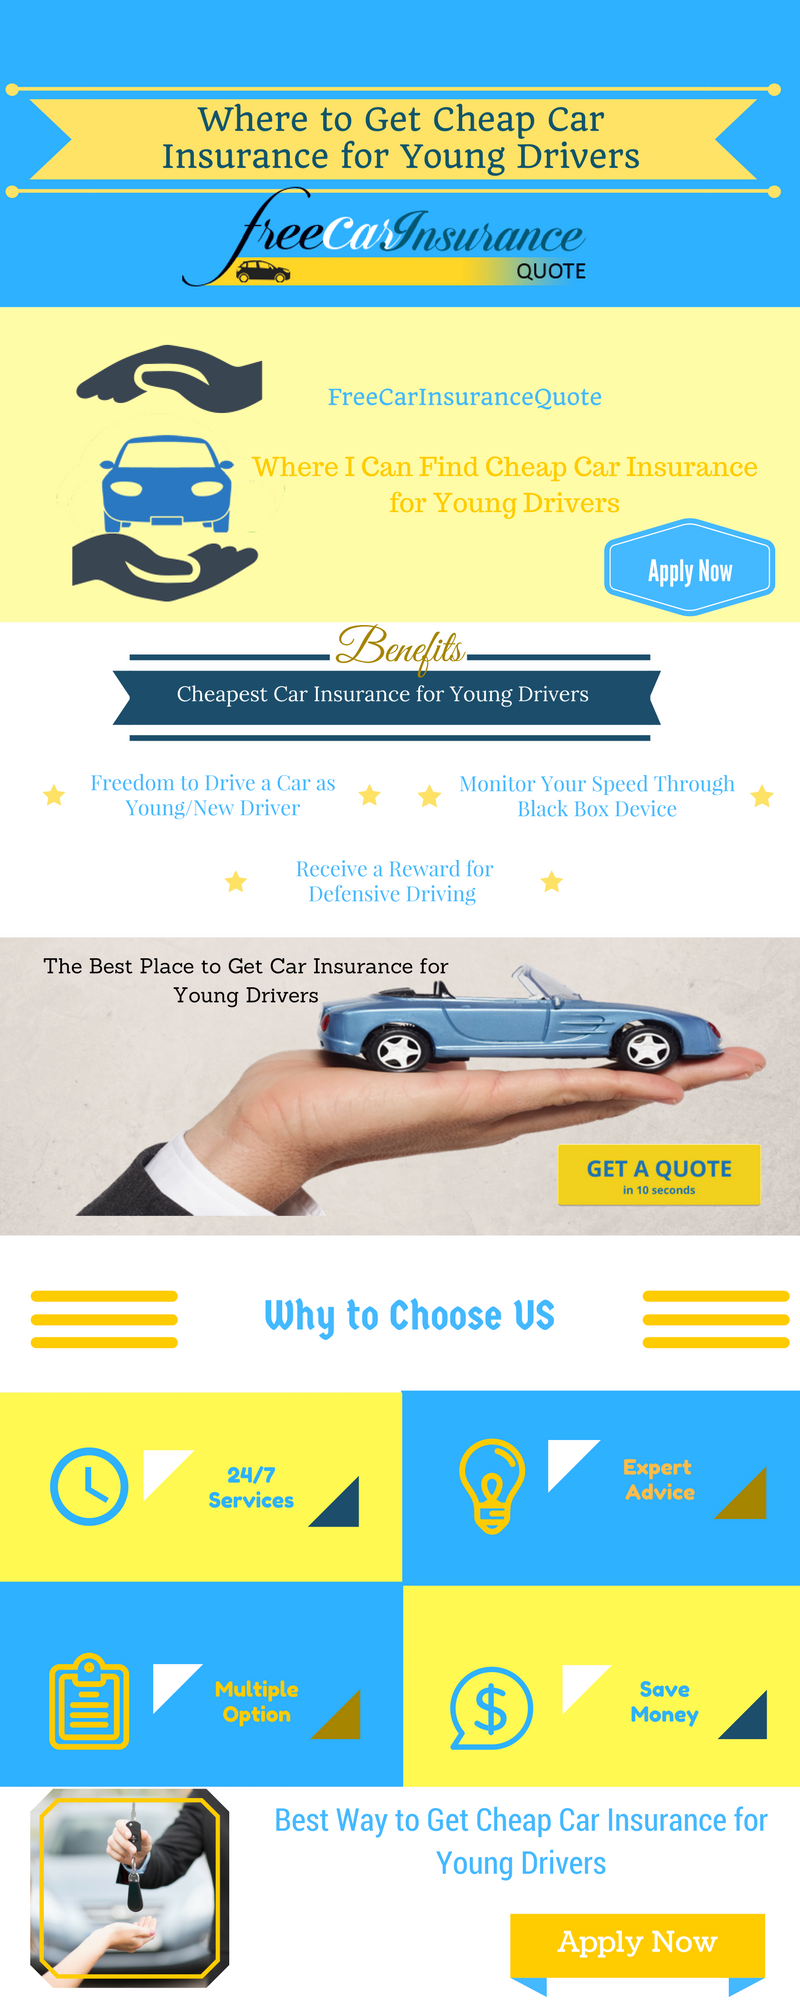 Where To Get Cheap Car Insurance For Young Drivers